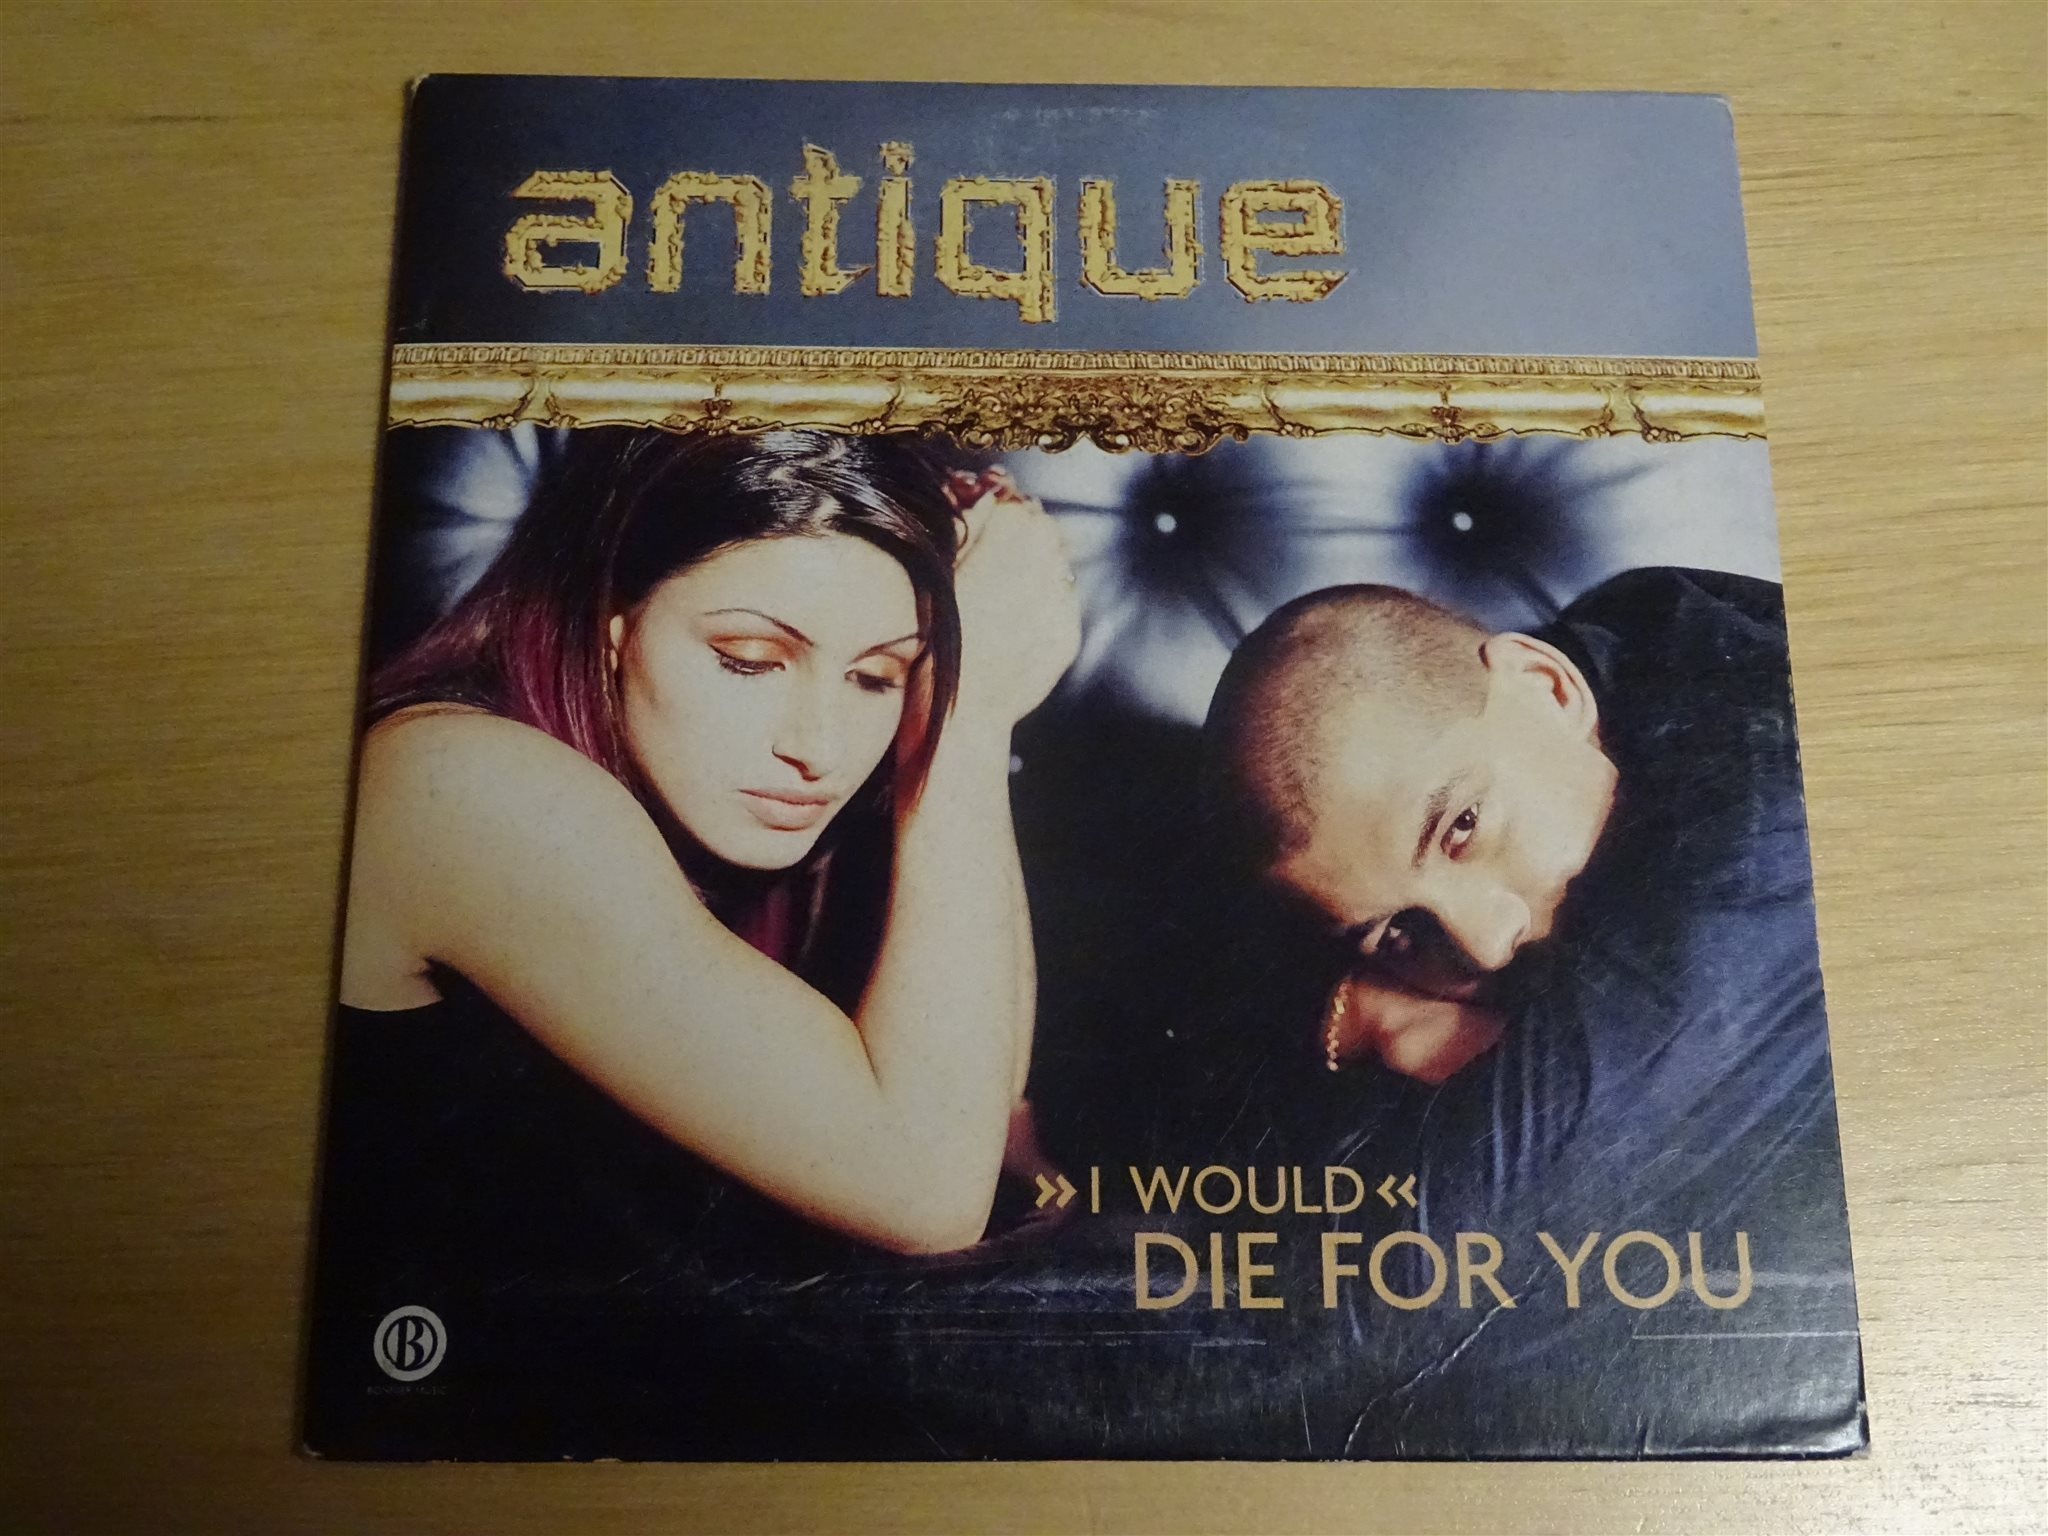 ANTIQUE (I would) Die for you Eurovision 2001 Grekland CD Singel